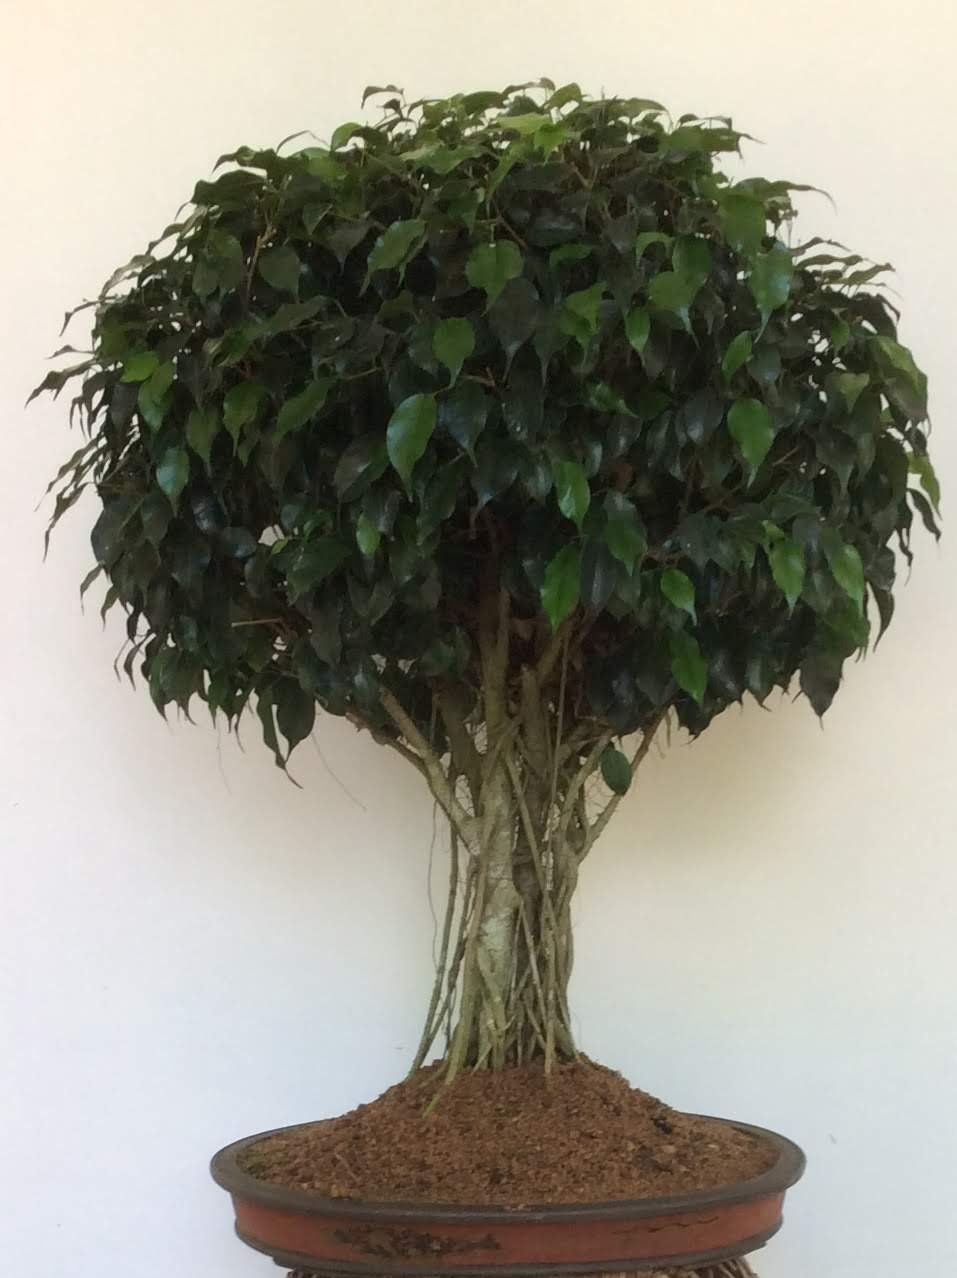 Ideal tropical bonsai plants - try to grow your own. - Lifezshining #bonsaiplants